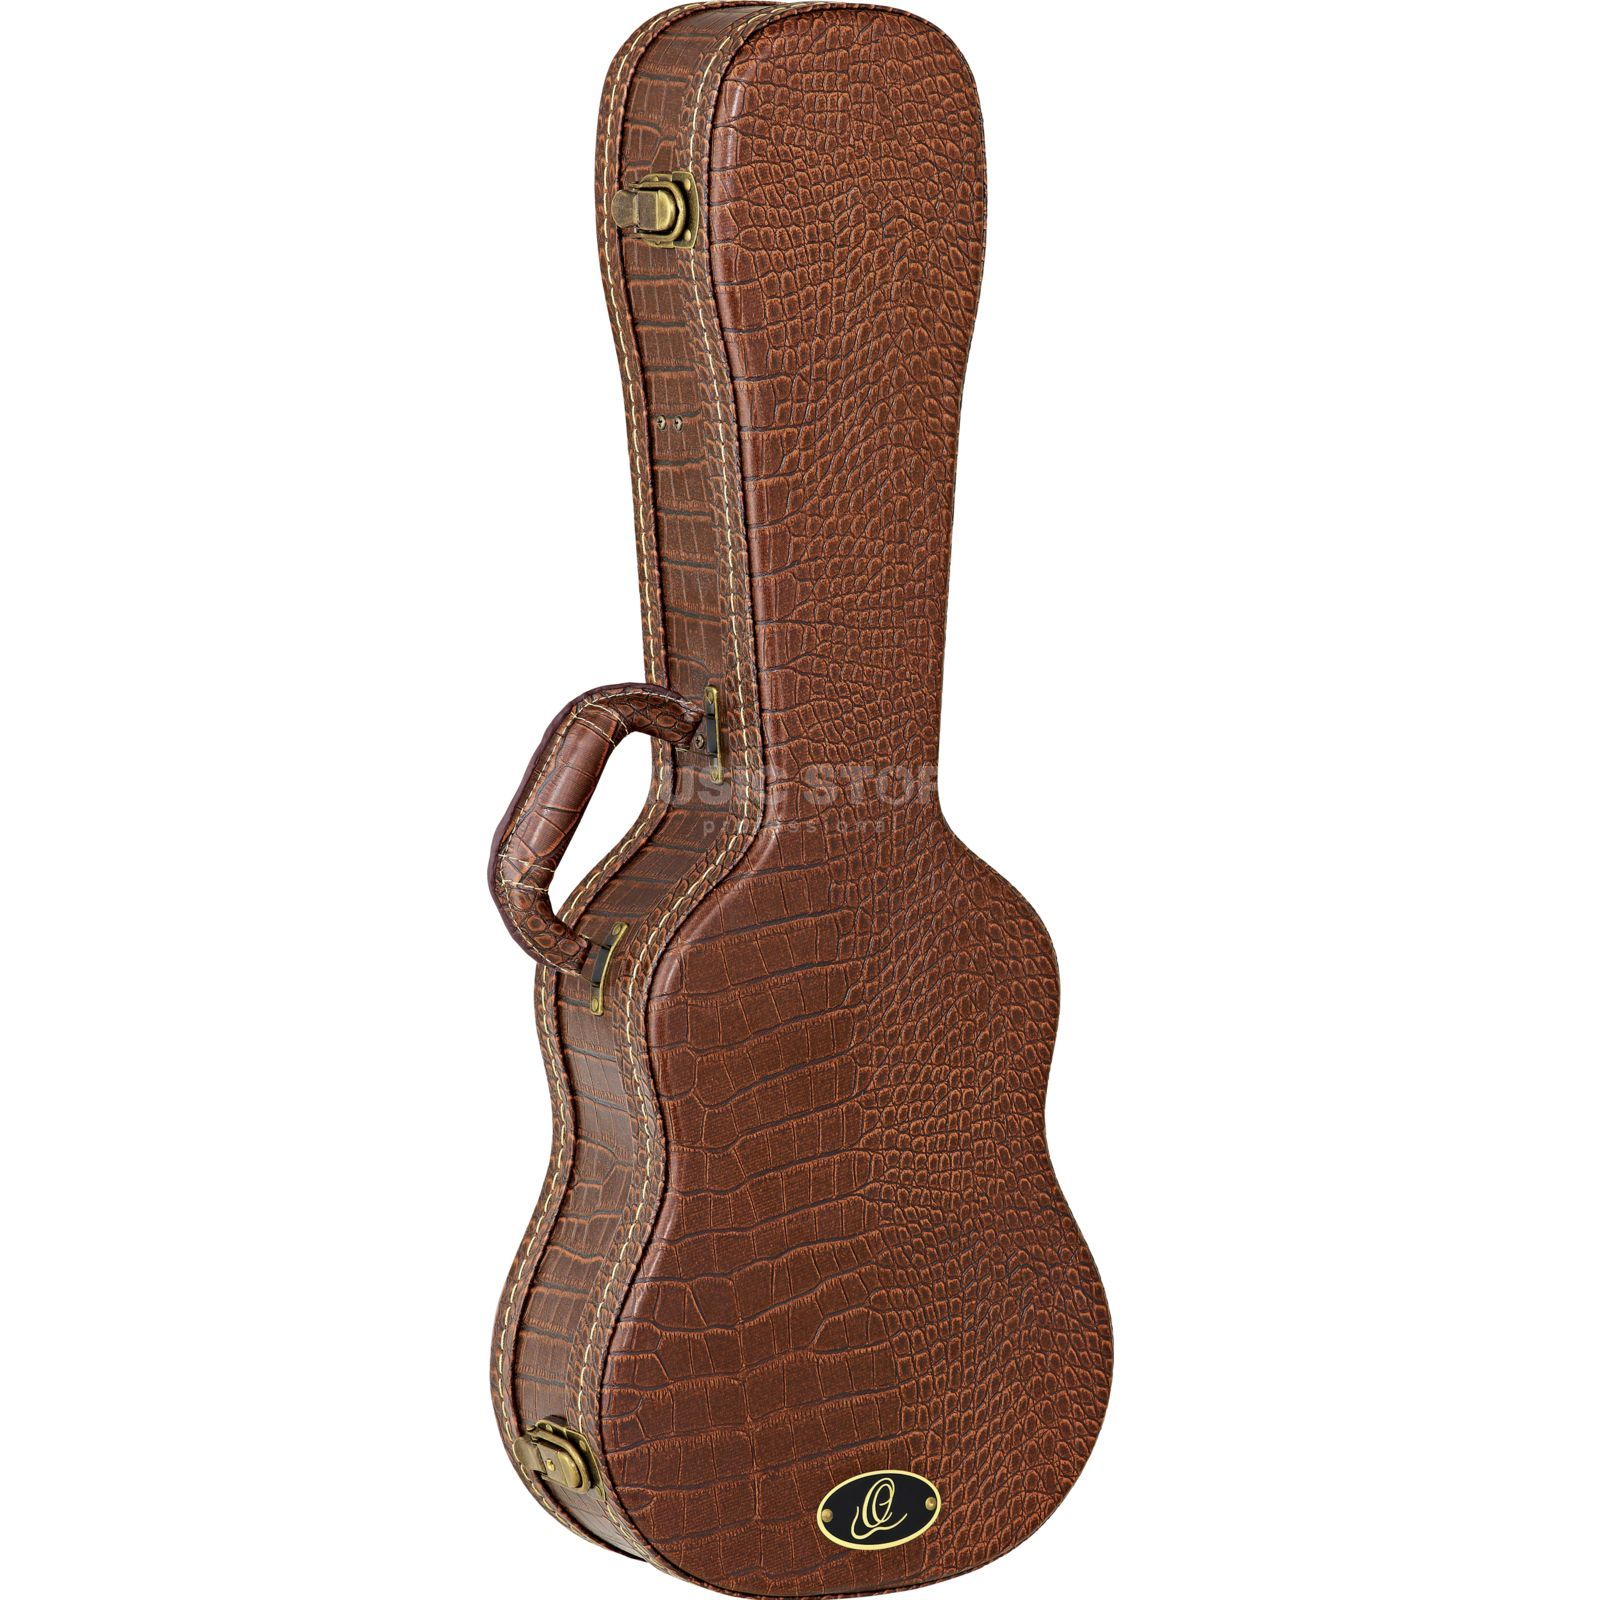 Ortega OUC-TE Ukulele Case Tenor Brown Croco Finish Produktbild